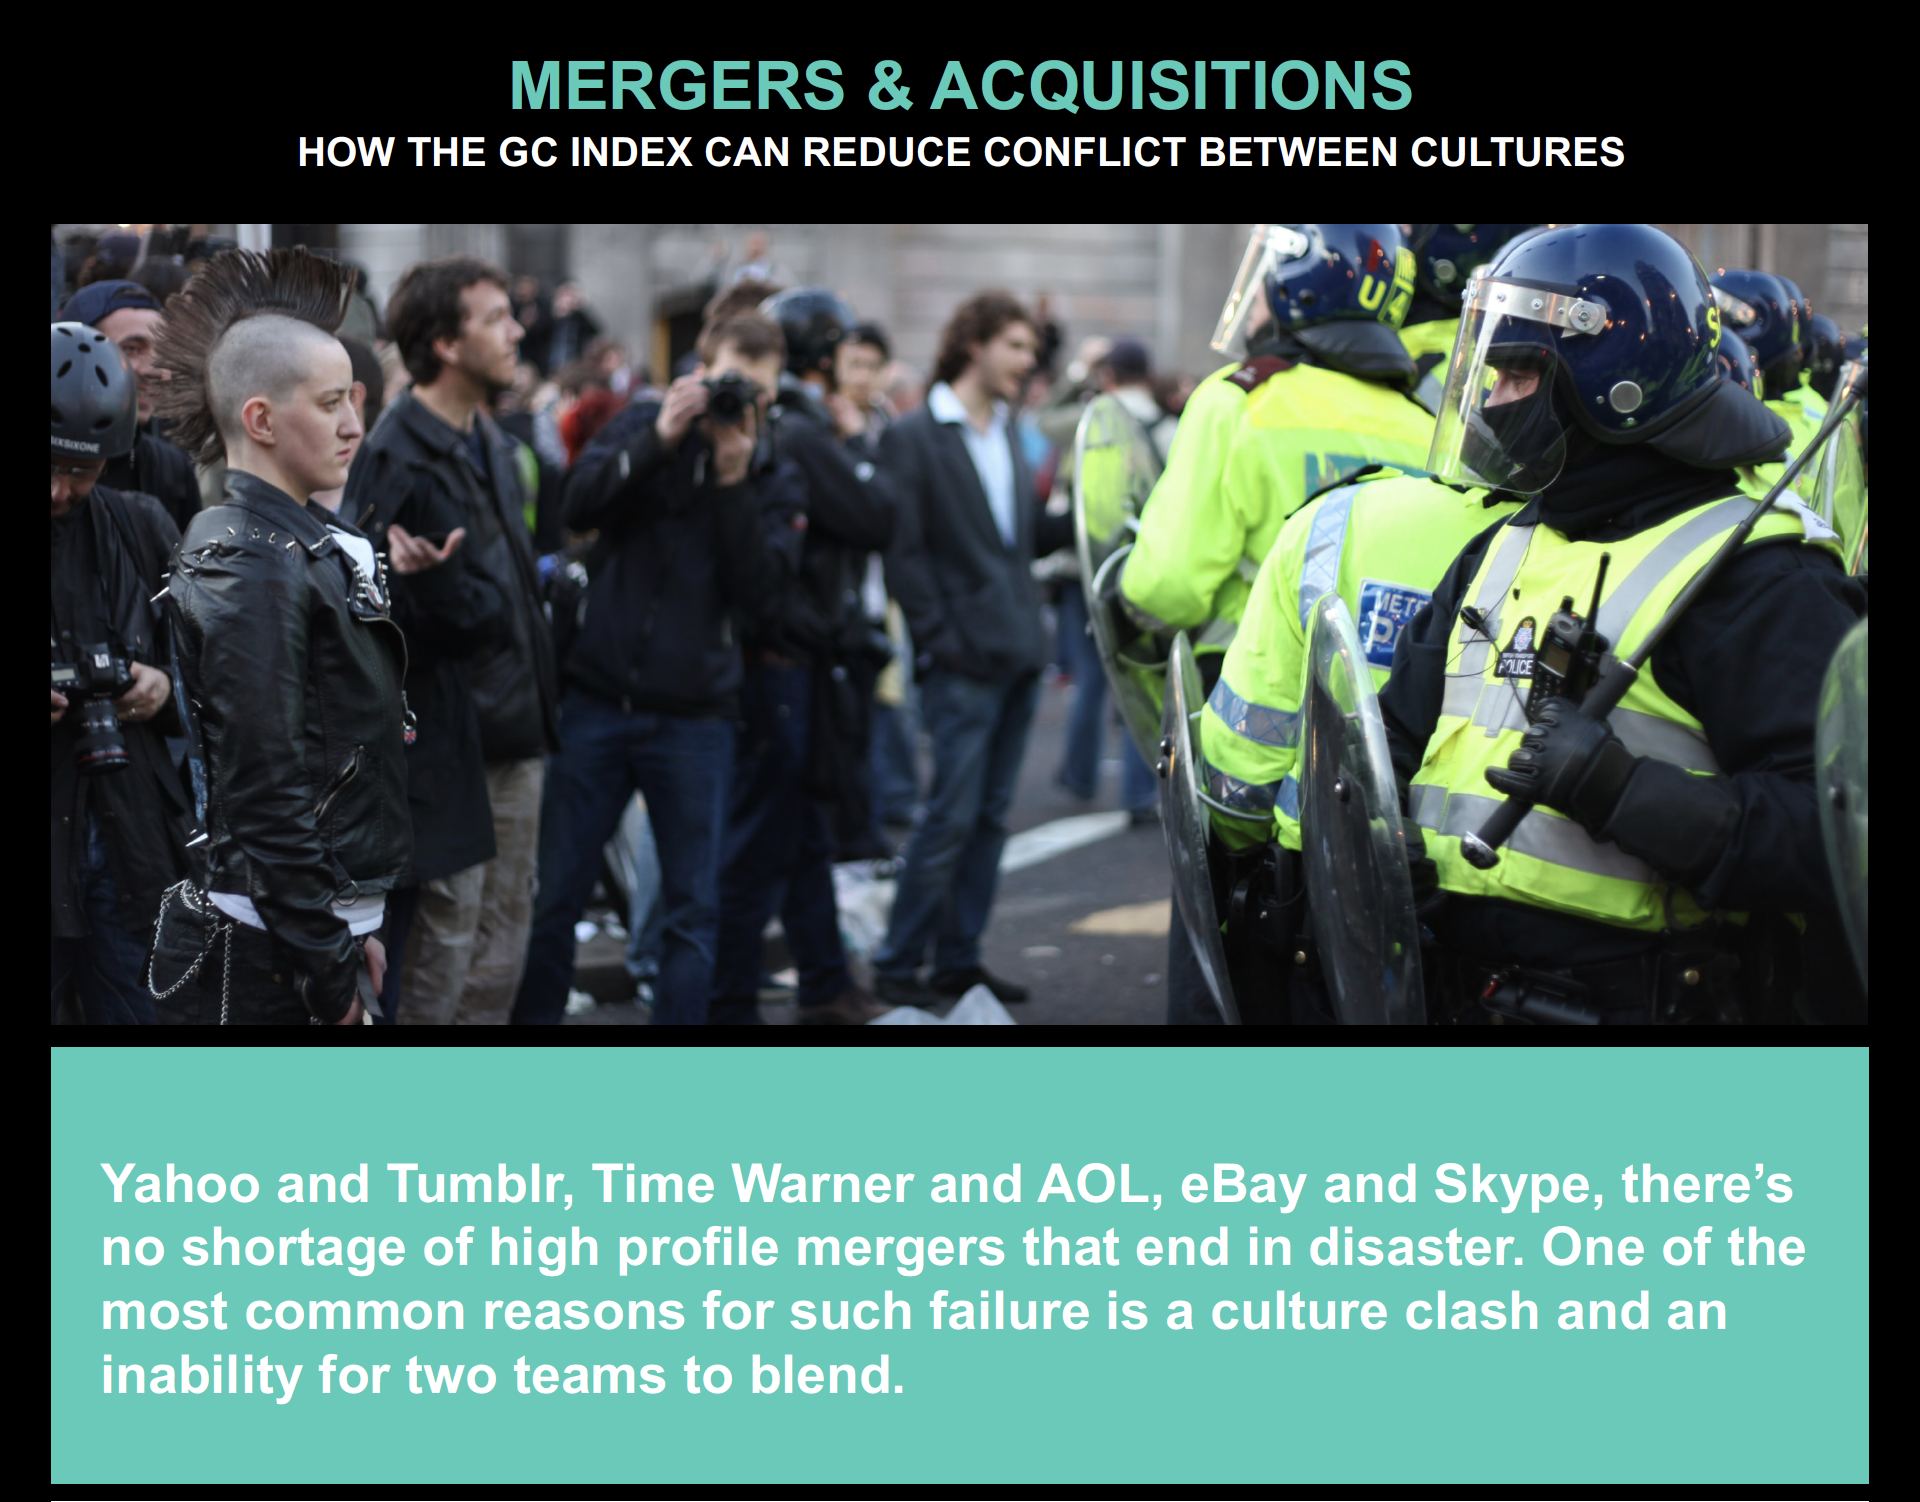 Mergers & Acquisition: HOW THE GC INDEX CAN REDUCE CONFLICT BETWEEN CULTURES